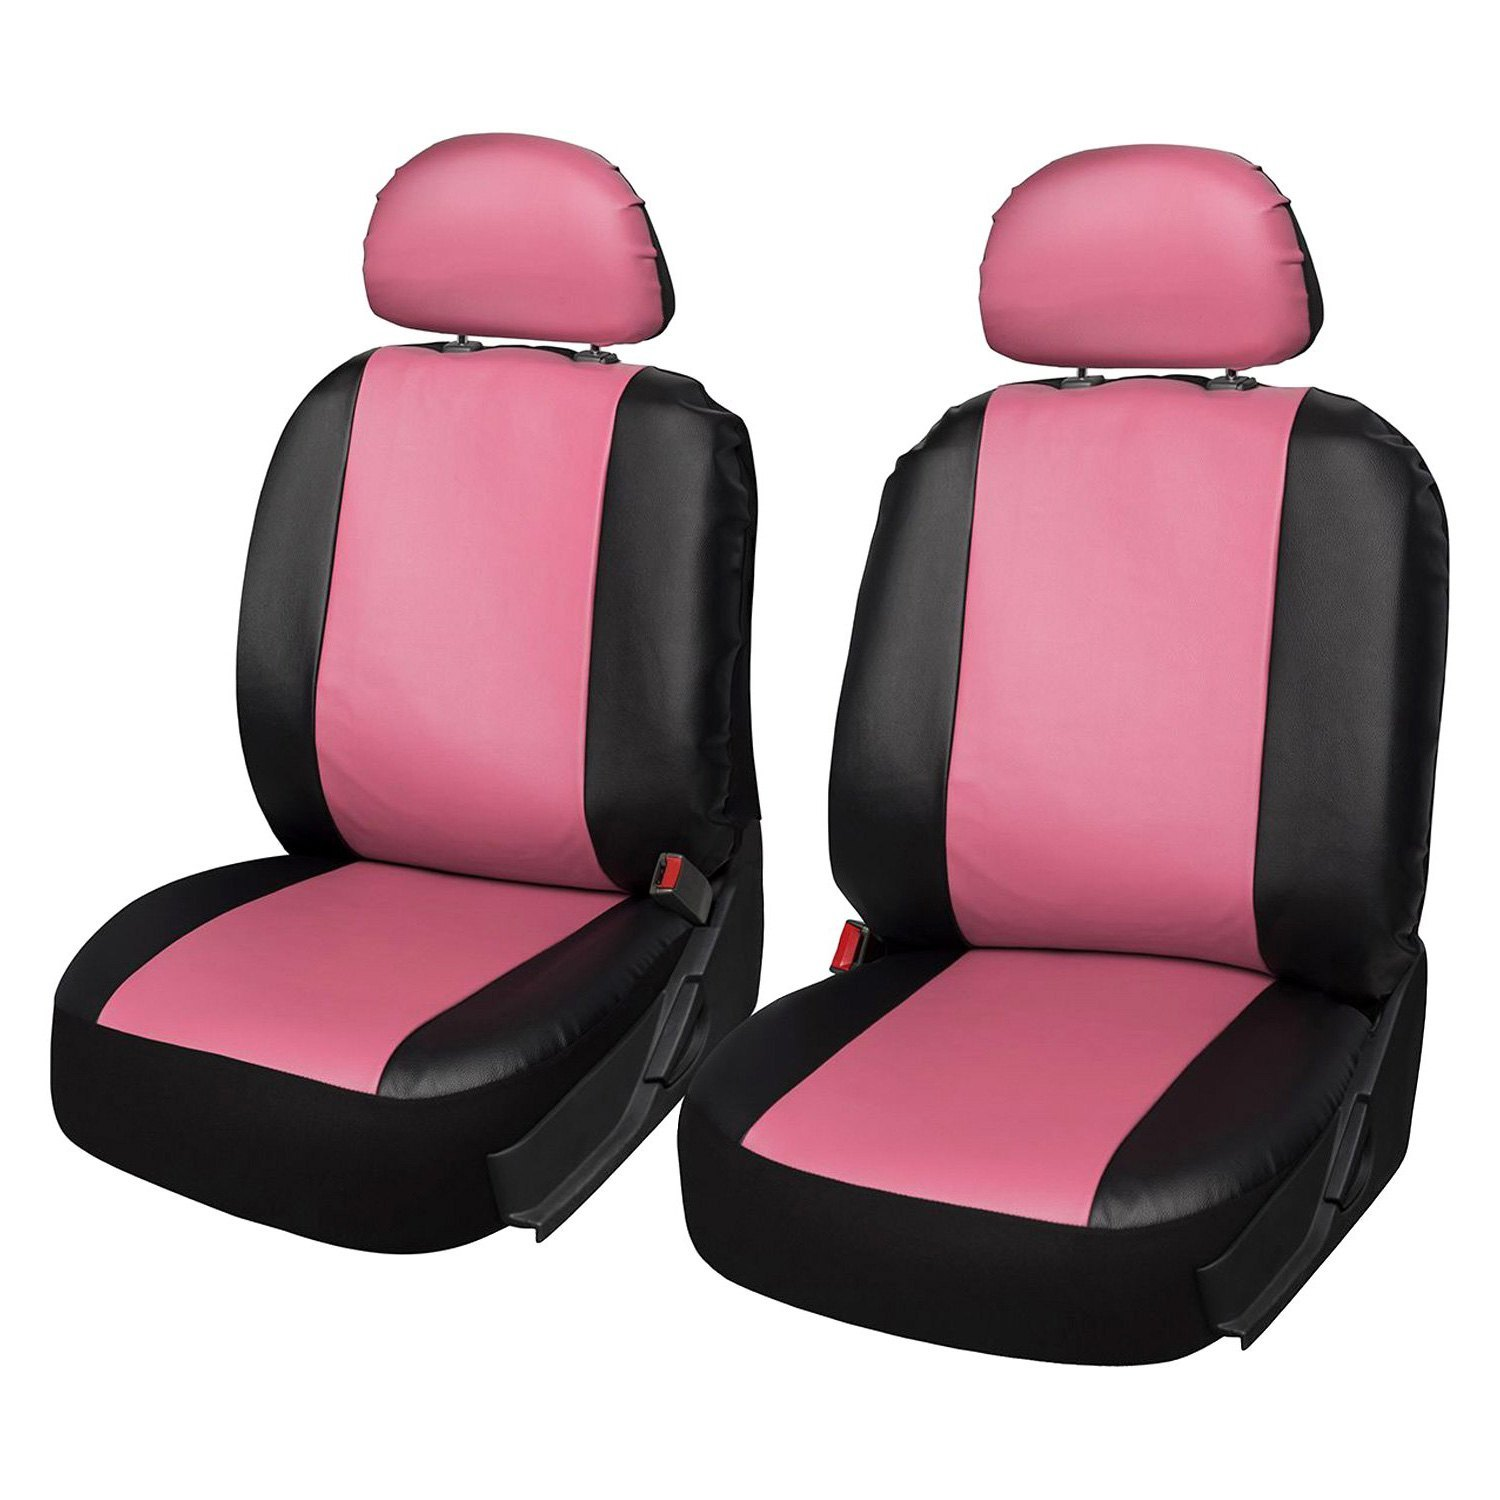 Oxgord Scpu S2b Pk Faux Leather 1st Row Pinkblack Seat Cover Set